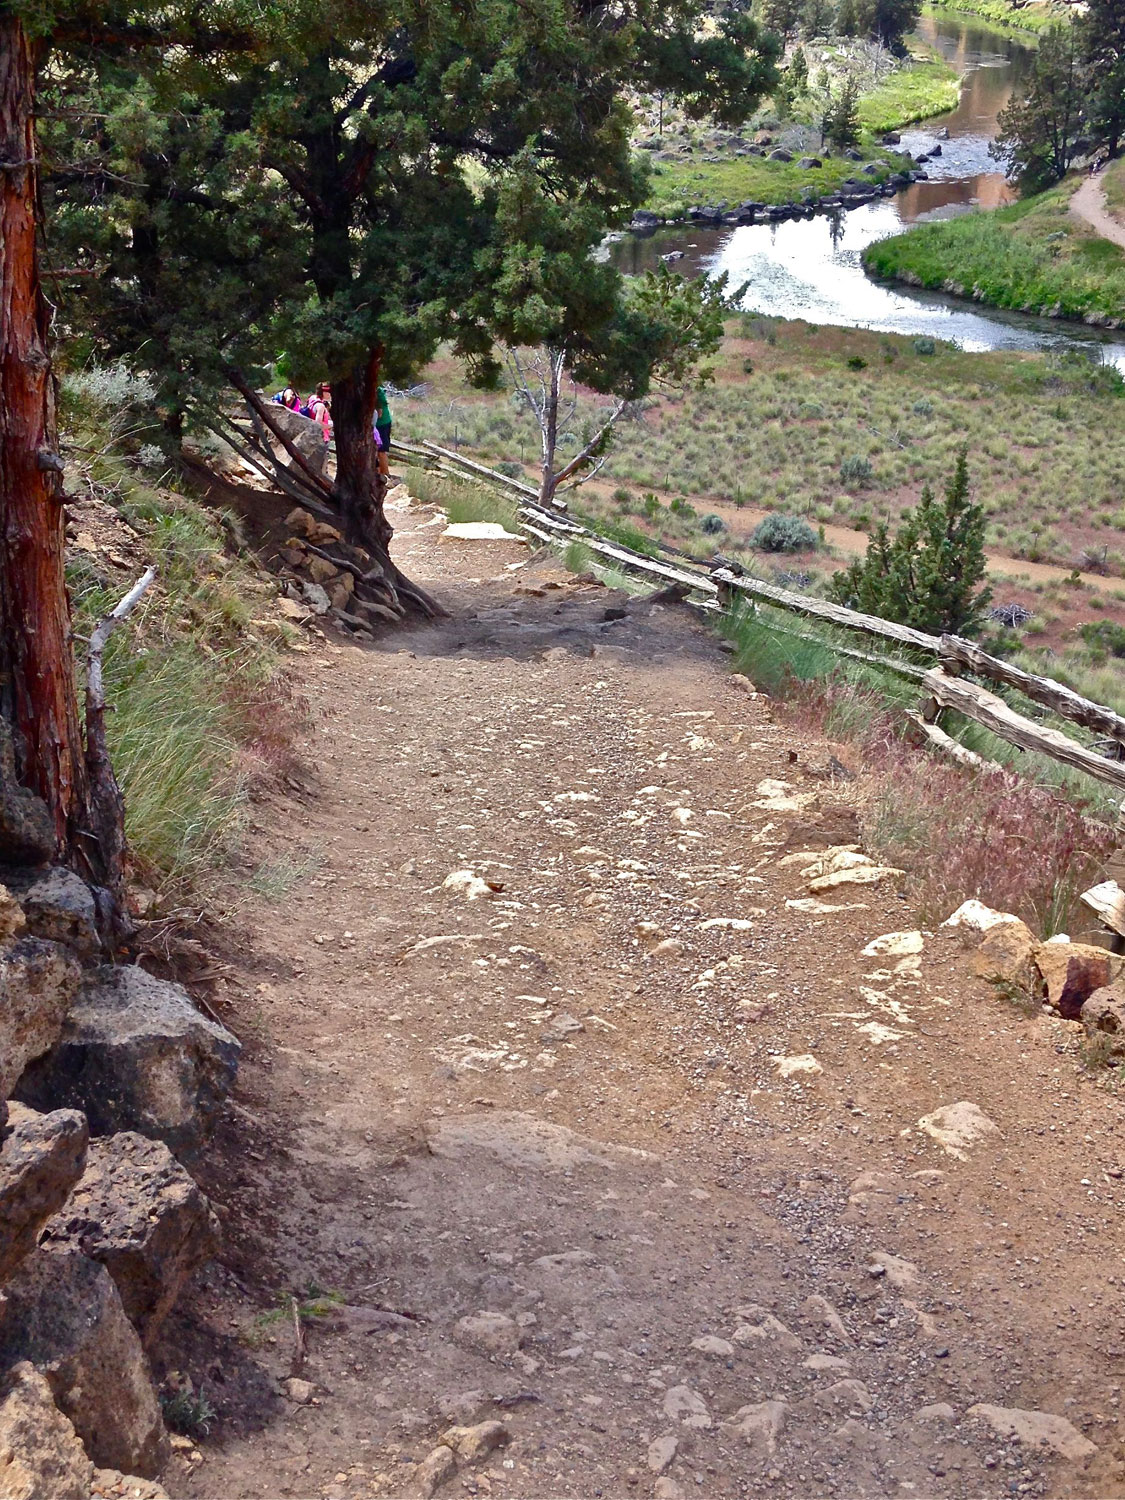 Start of the Chute Trail into Smith Rock State Park.